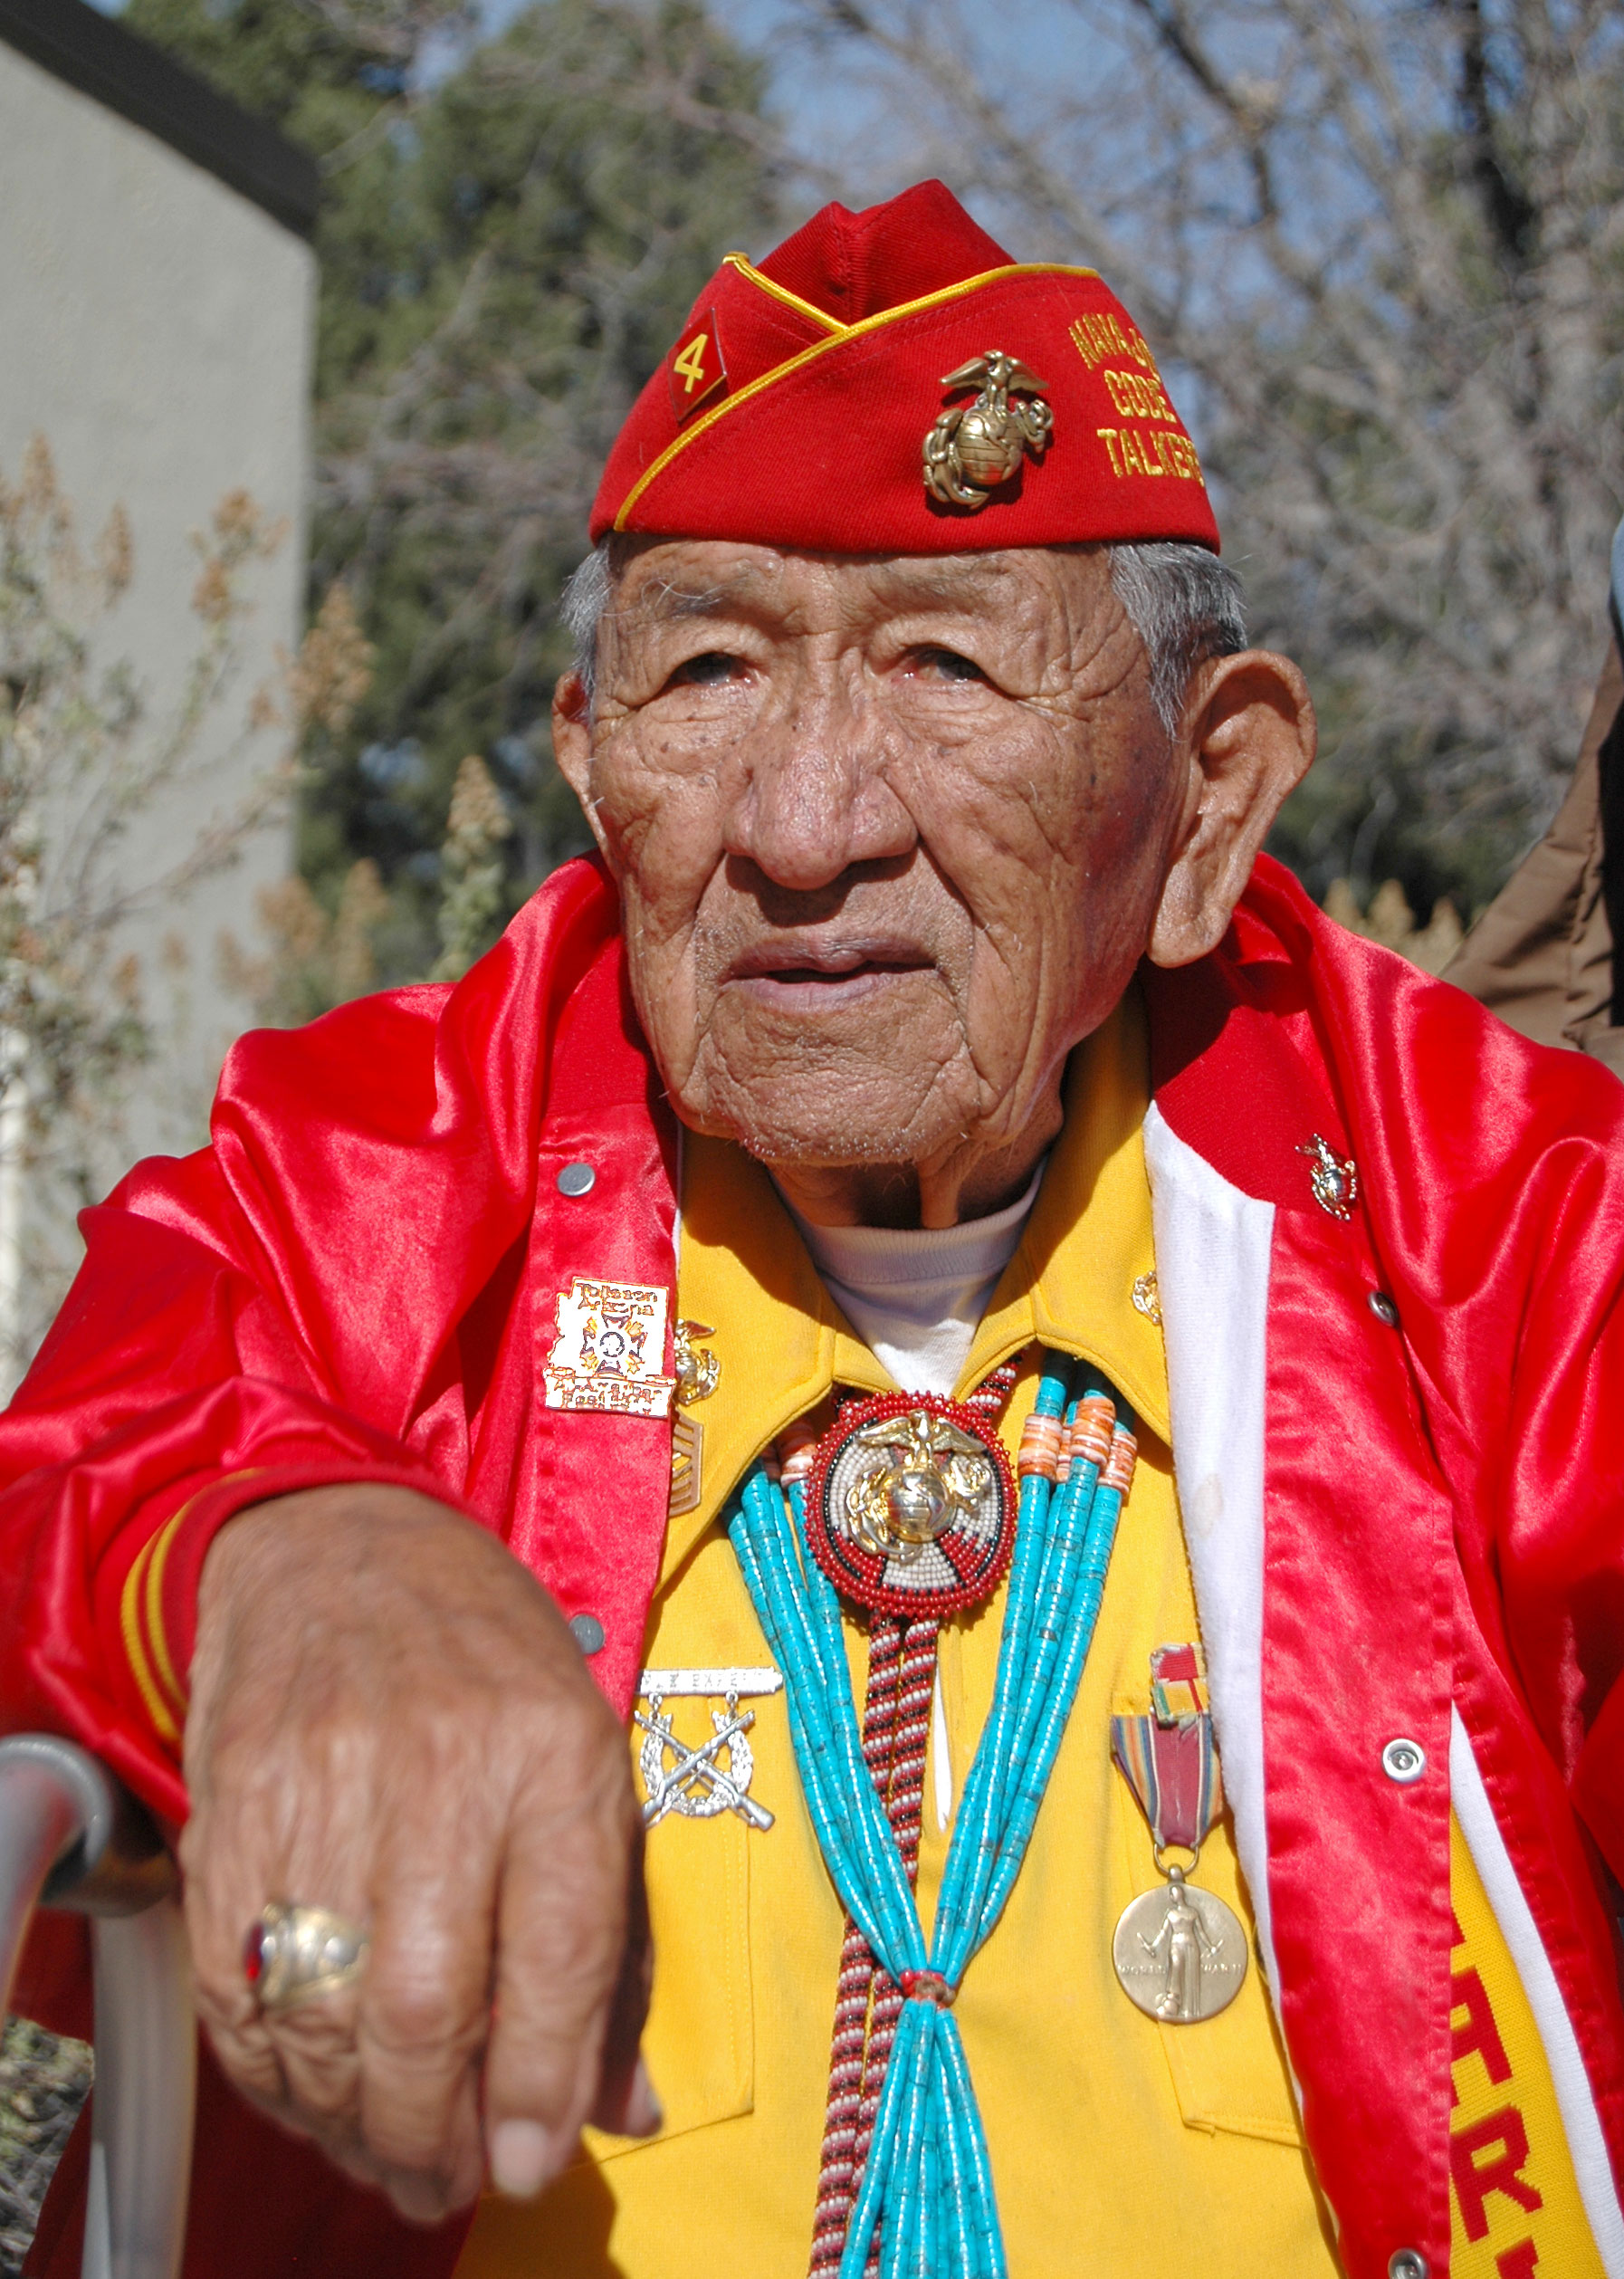 essay on navajo code talkers Today, we have with us three of the thirteen surviving navajo code talkers of  world war ii first, we have fleming begaye fleming begaye is.